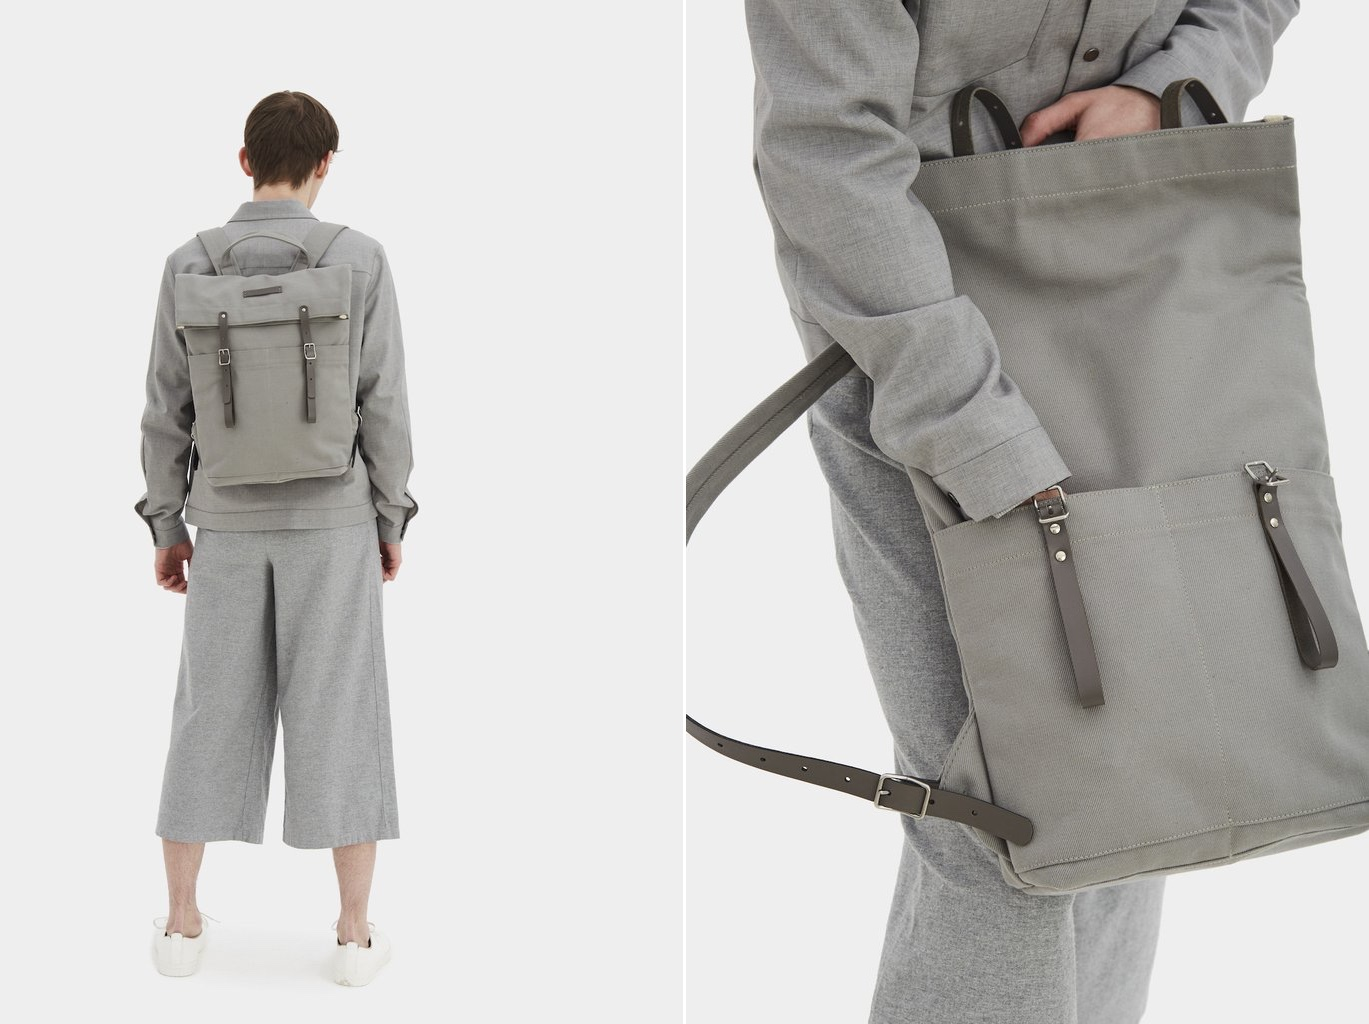 Waxed grey newspaper rucksack